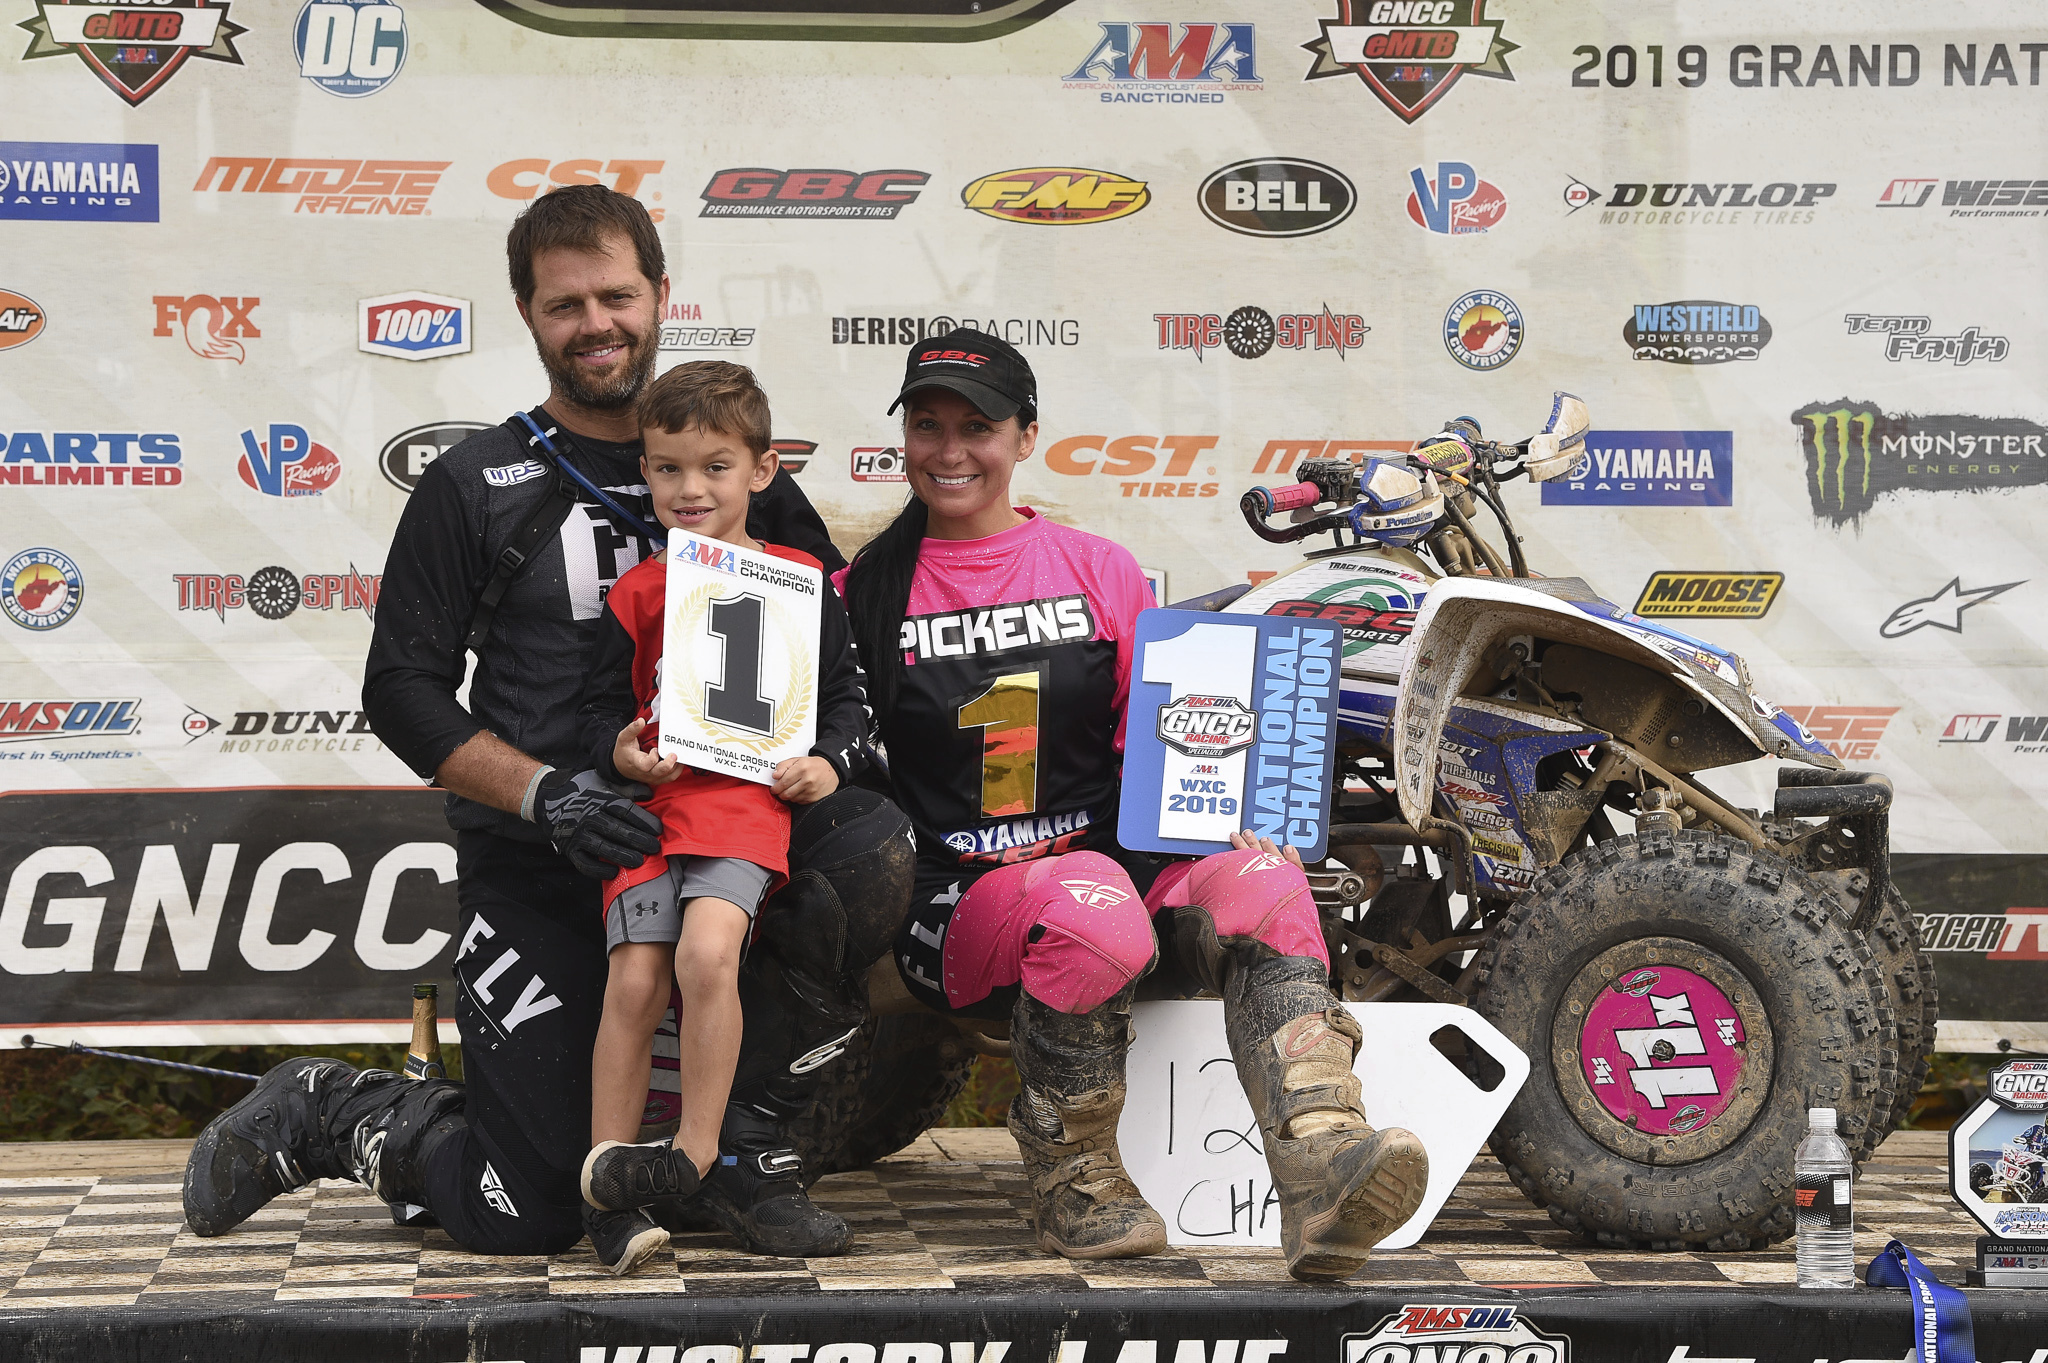 Traci Pickens added to her all-time leading women's ATV racing record with her 12th GNCC WXC championship aboard her GBC Motorsports / Fly Racing / Yamaha YFZ450R, with seven first-place finishes this season.